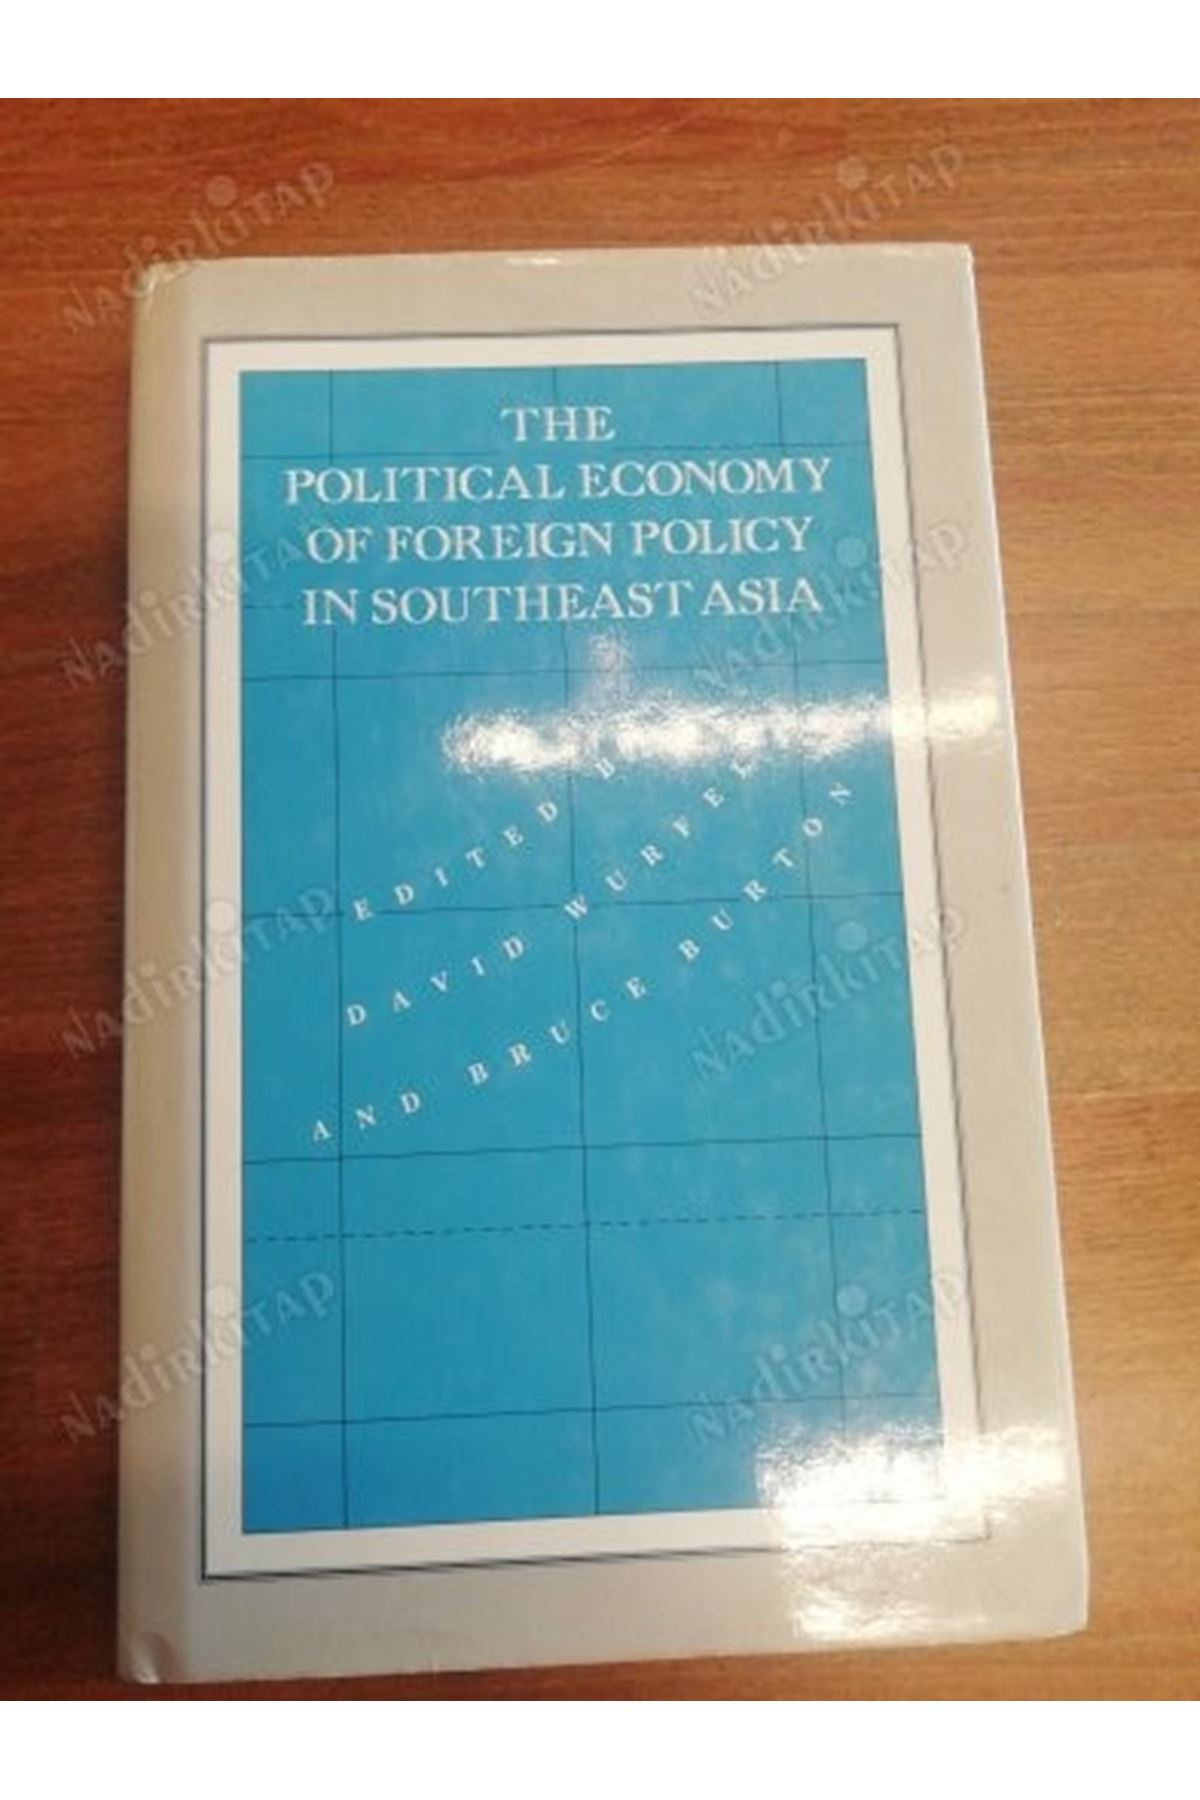 DAVID WURFEL - THE POLITICAL ECONOMY OF FOREIGN POLICY IN SOUTHEAST ASIA